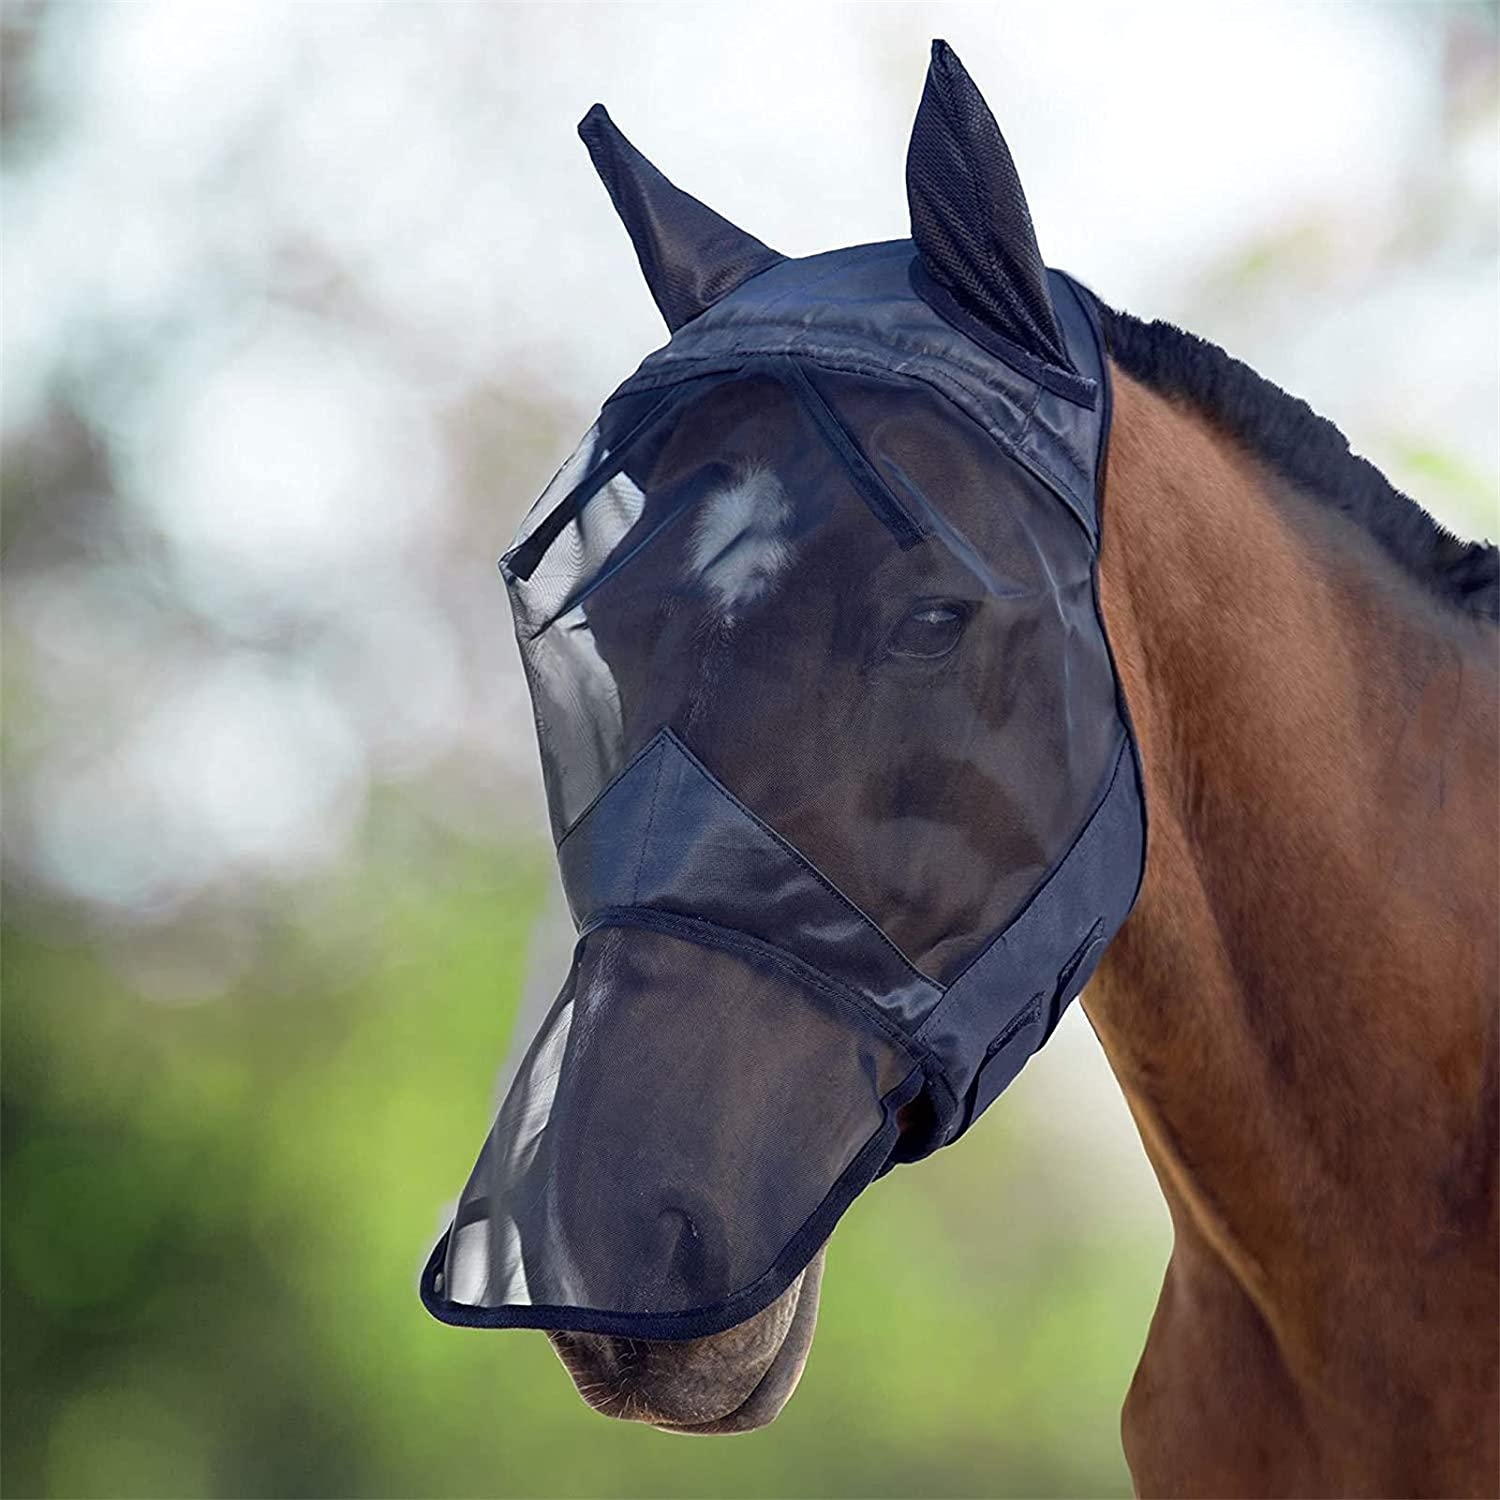 LiuMi Horse Mask with Ears Fly Manufacturer regenerated product Elastic Limited time trial price Ne Soft Smooth